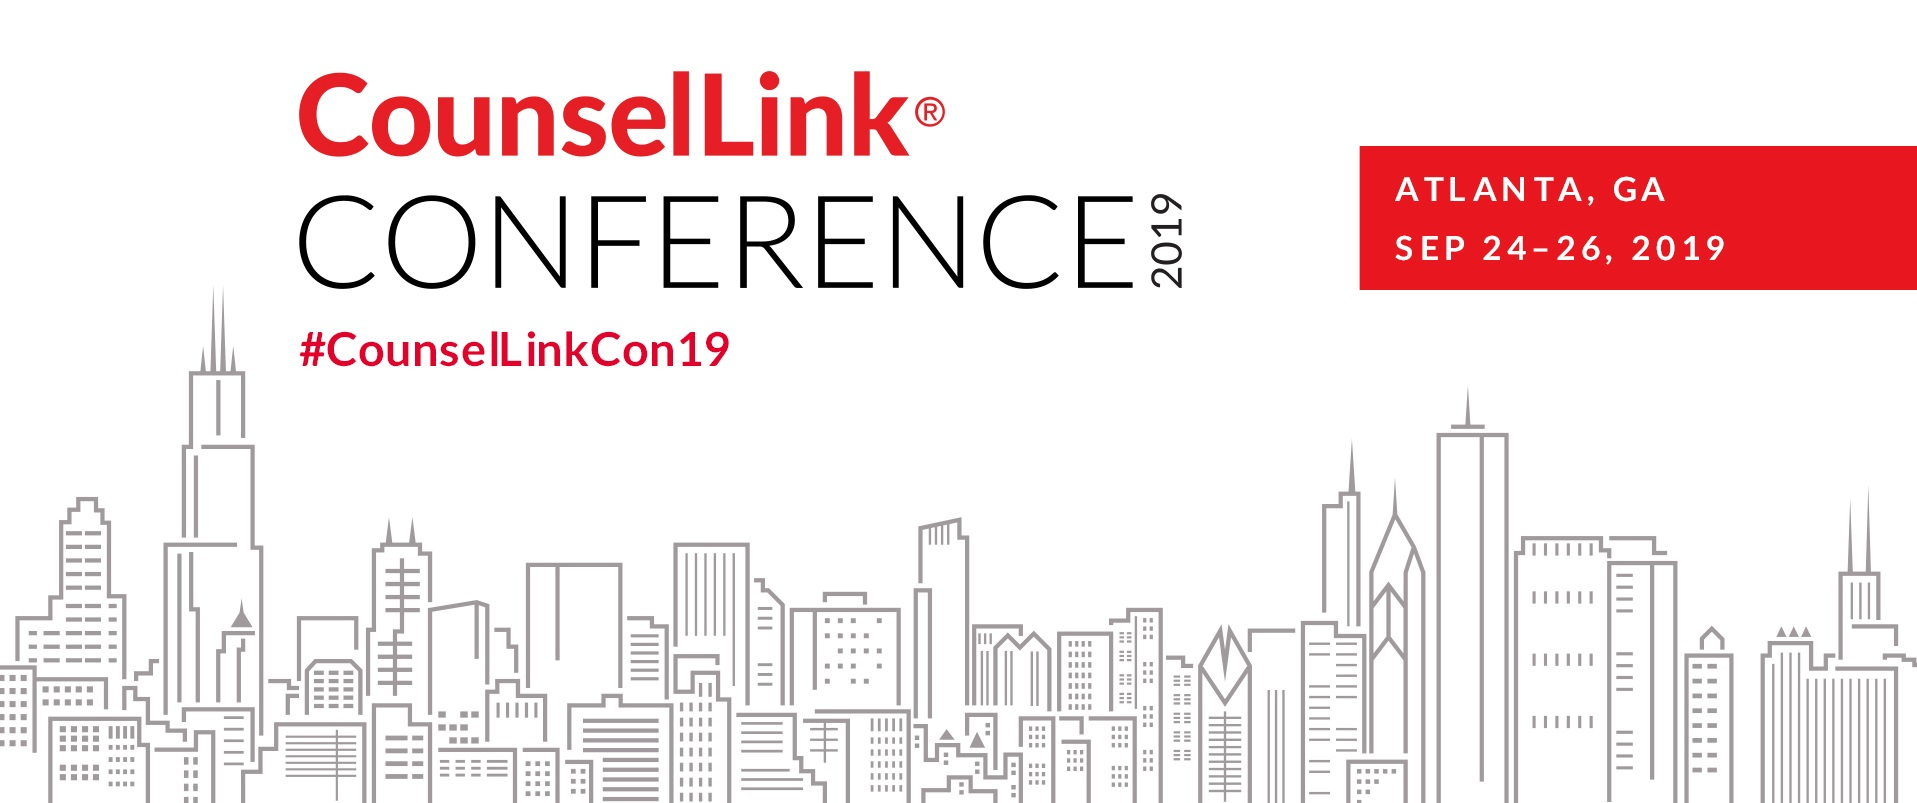 CounselLink Conference 2019